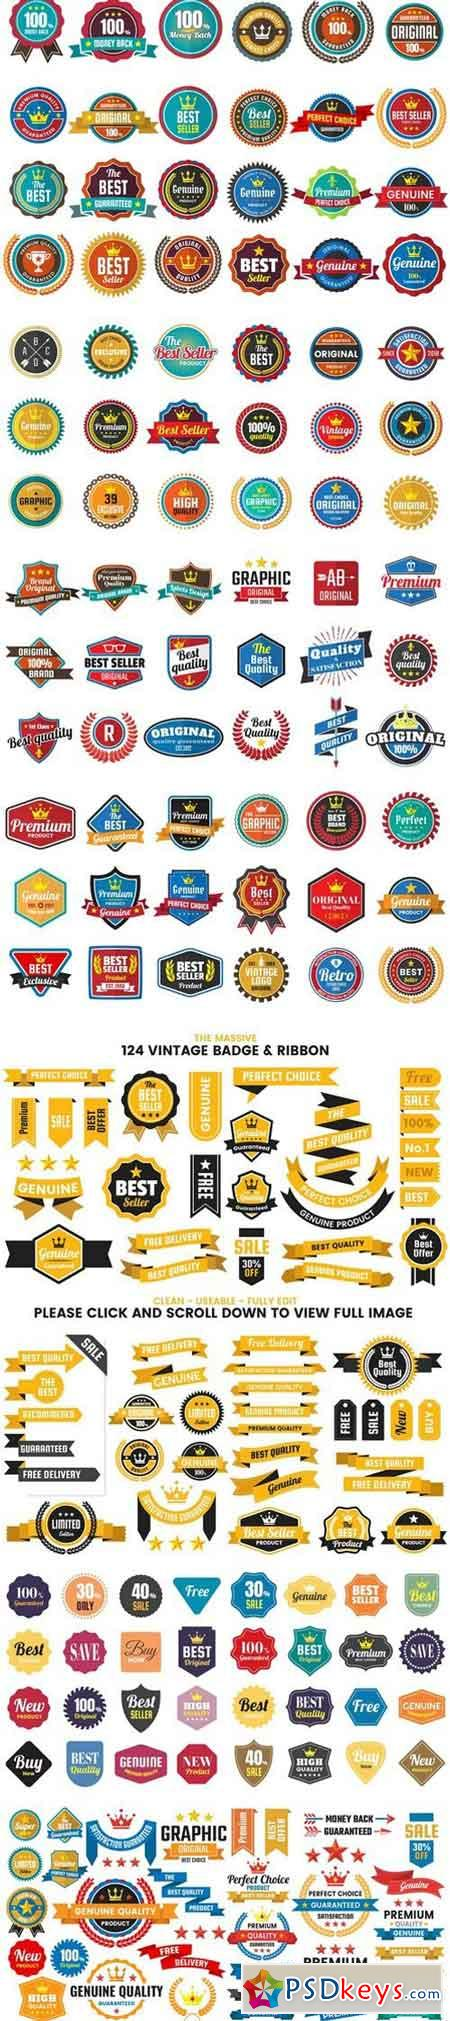 1046 VINTAGE BADGE & RIBBON 2227173